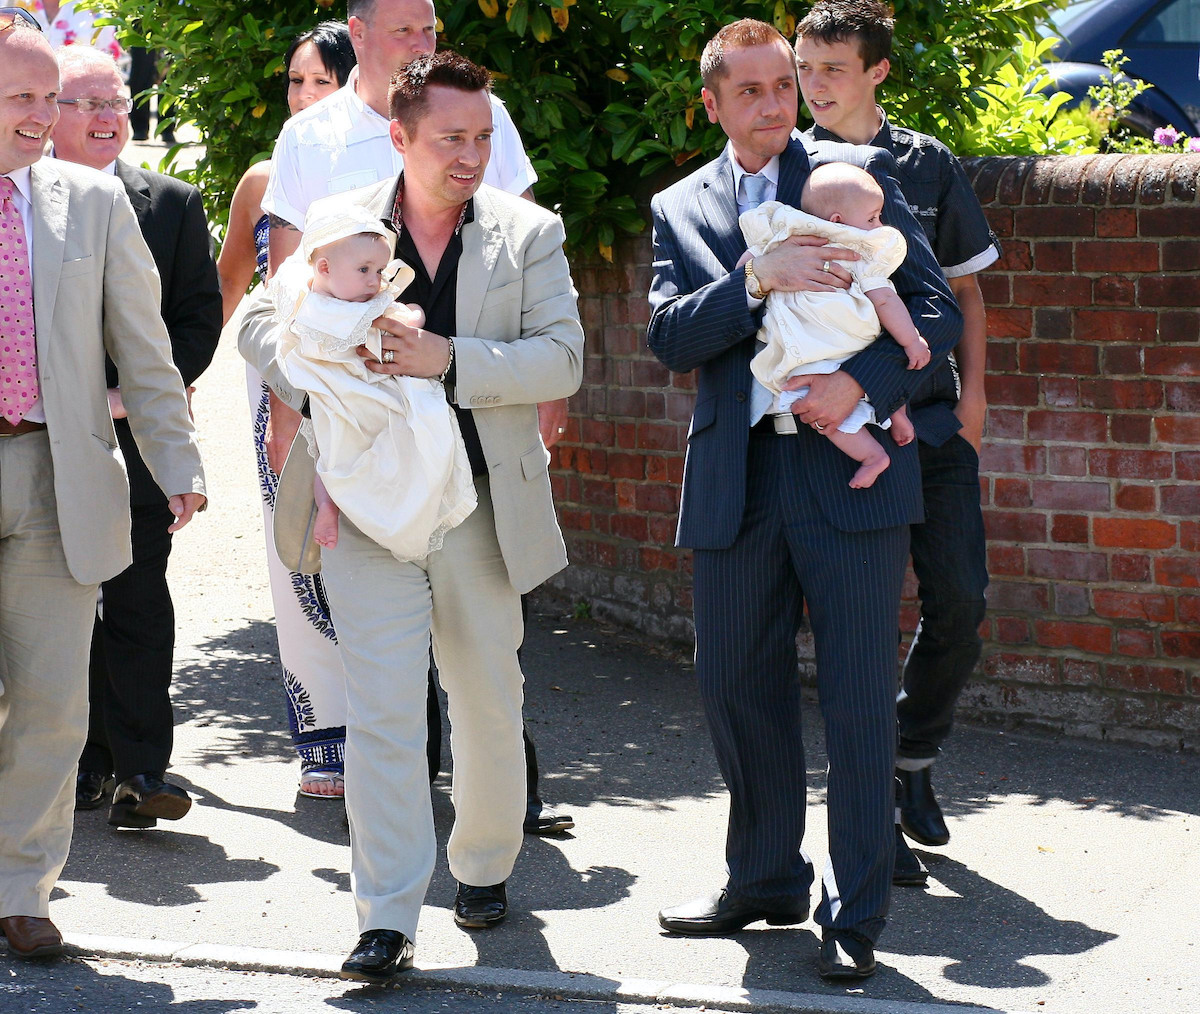 Gay couple Barrie and Tony Drewitt-Barlow carry their new twins Jasper and Dallas away from St. John the Baptist Church in Danbury, Essex